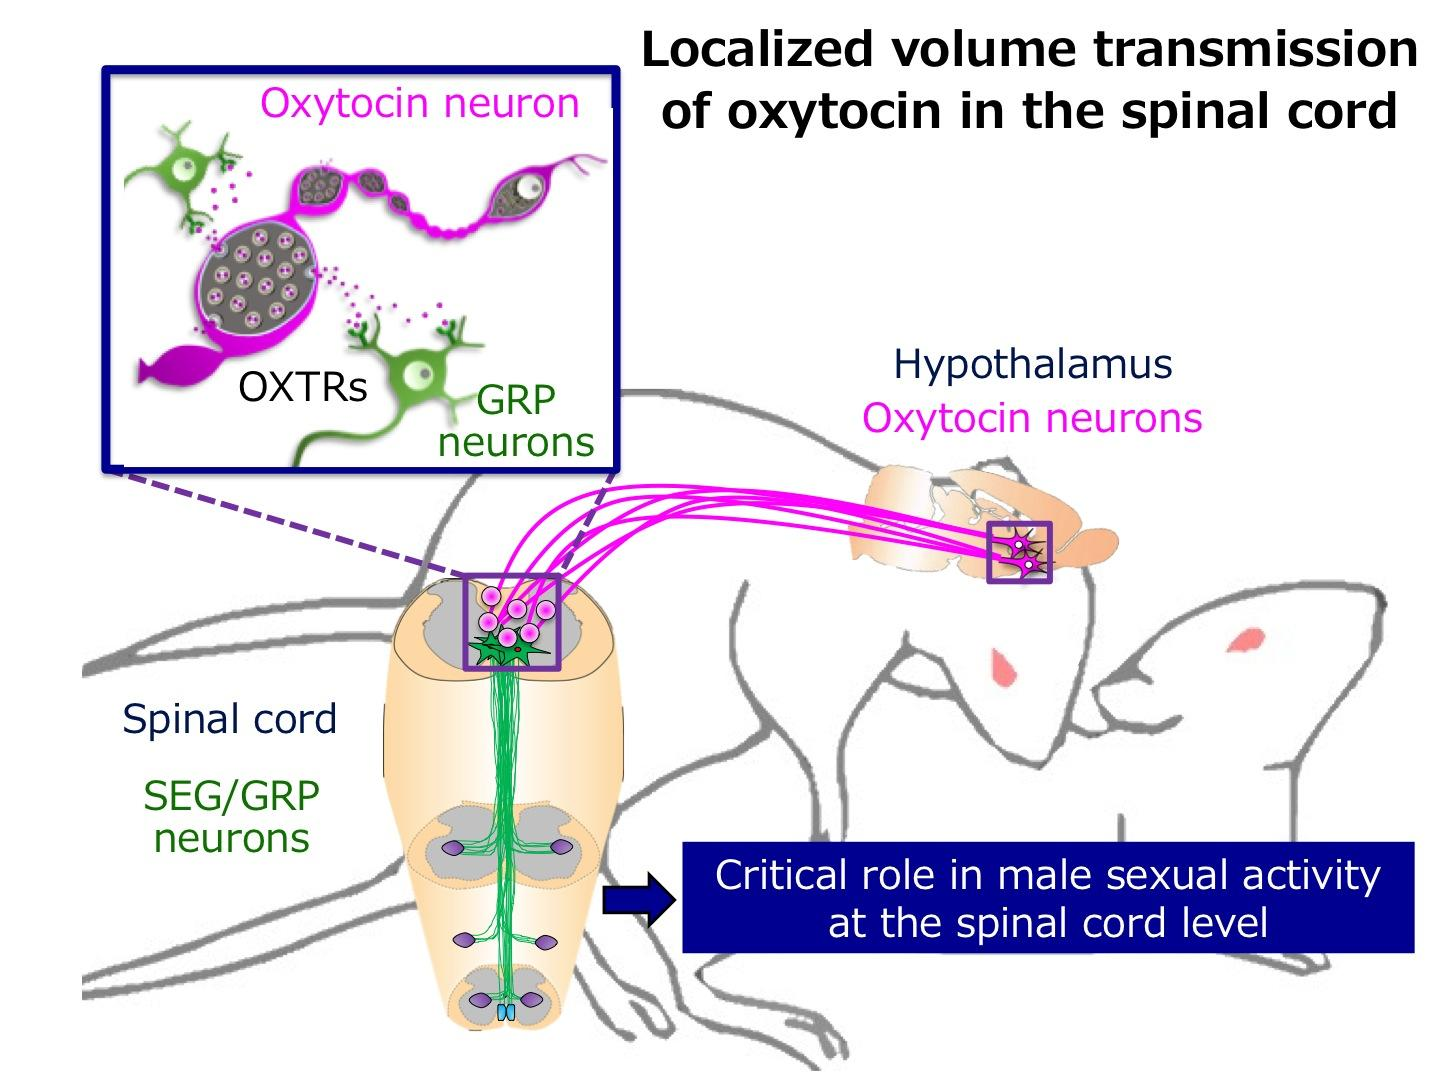 Novel Roles of the Love Hormone 'oxytocin' in Controlling Male Sexual Activity